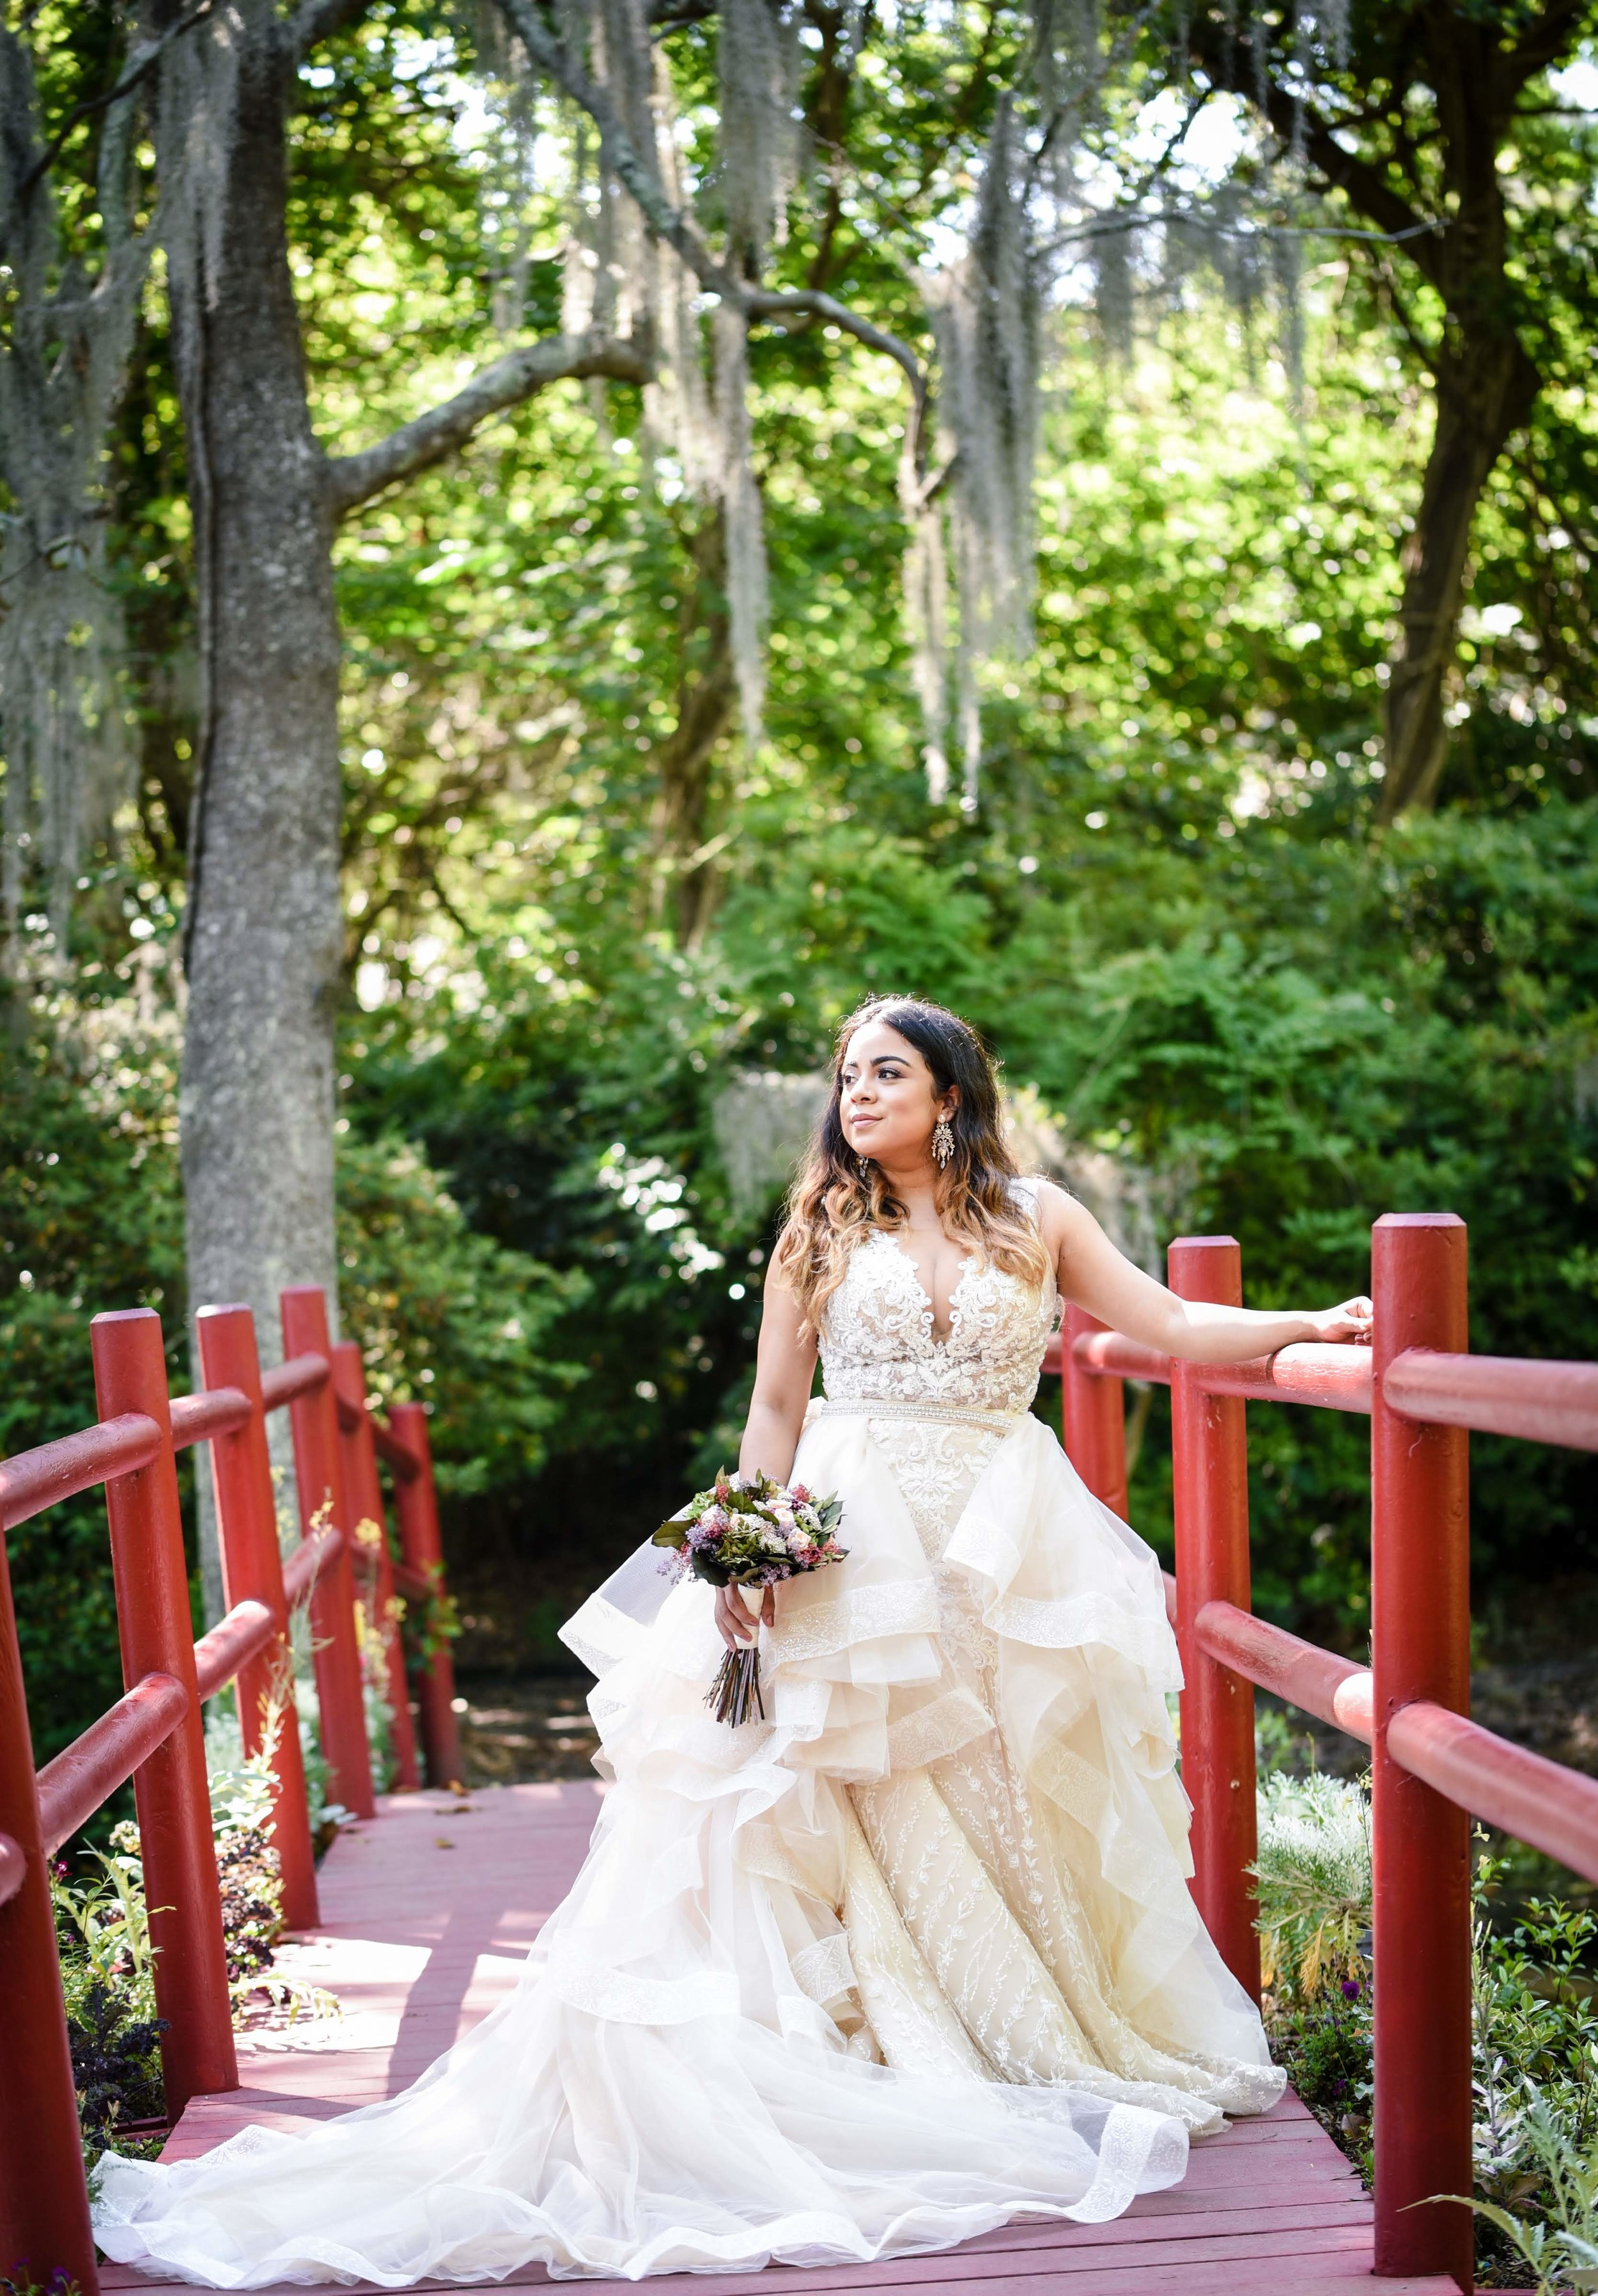 Jessica's Bridal Portrait Session at Magnolia Plantation and Gardens | Palmetto State Weddings